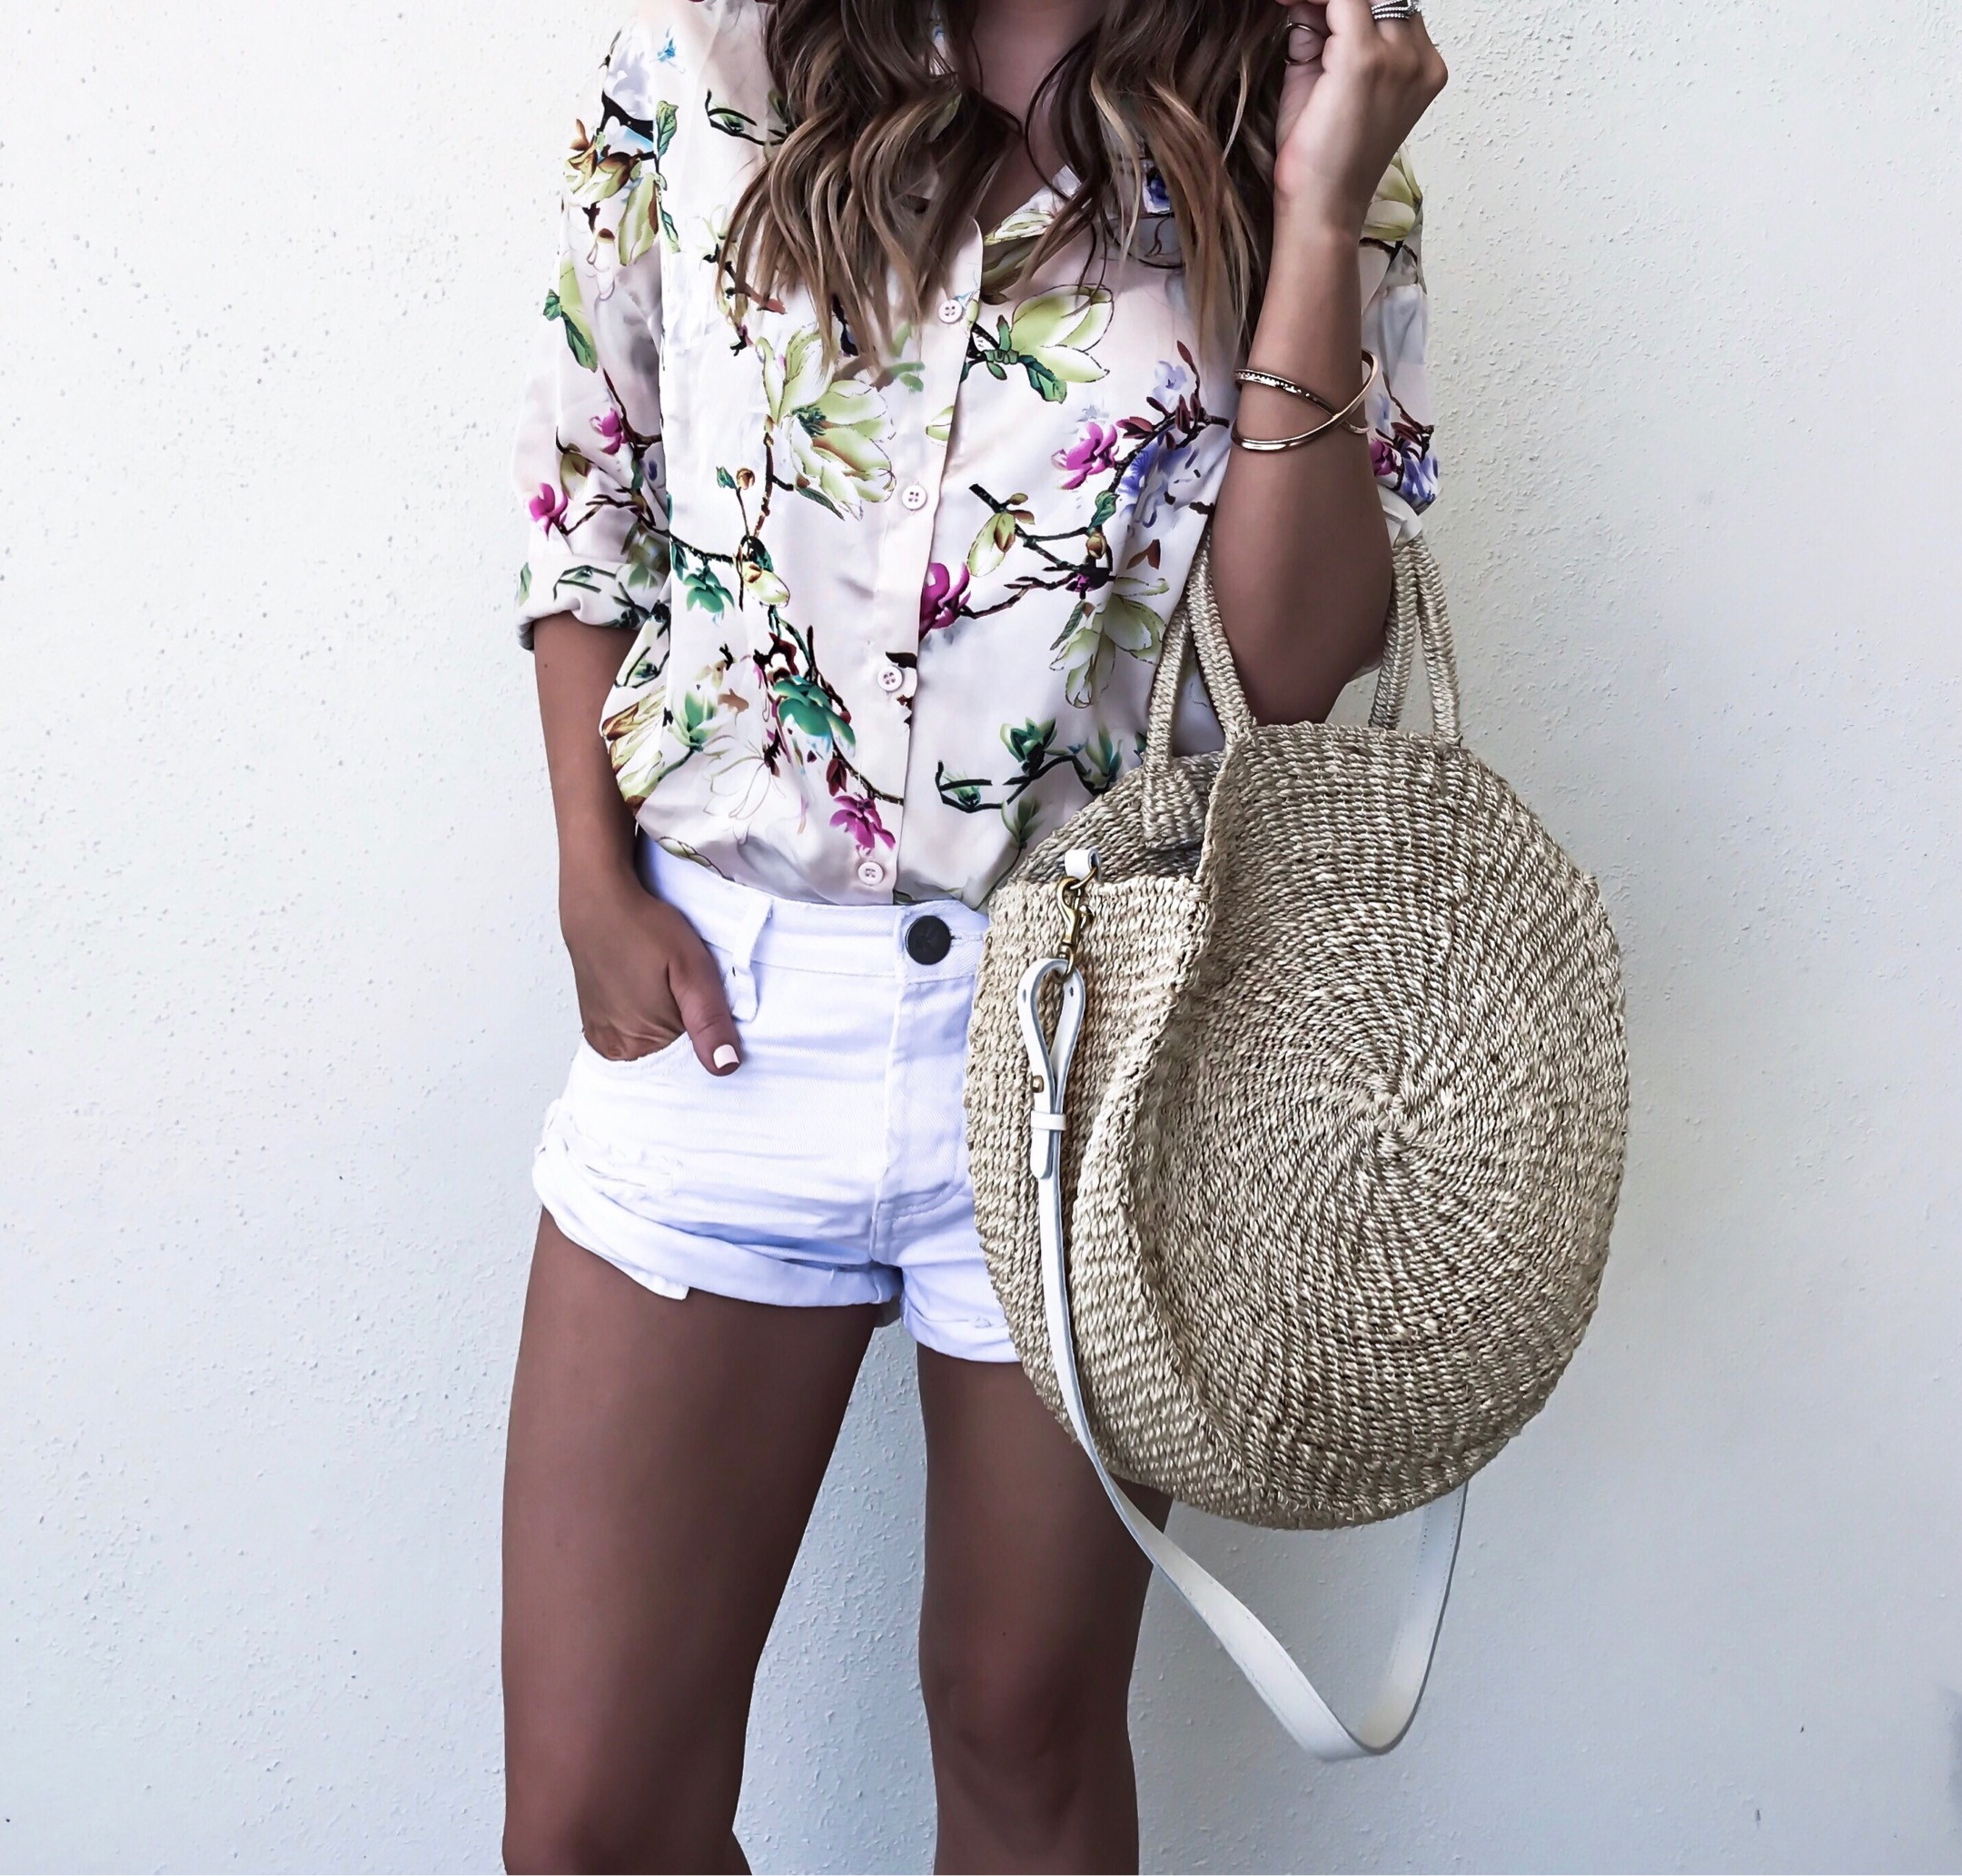 Tiffany Jais Houston fashion and lifestyle blogger | Clare V Alice round tote, one teaspoon bandit shorts